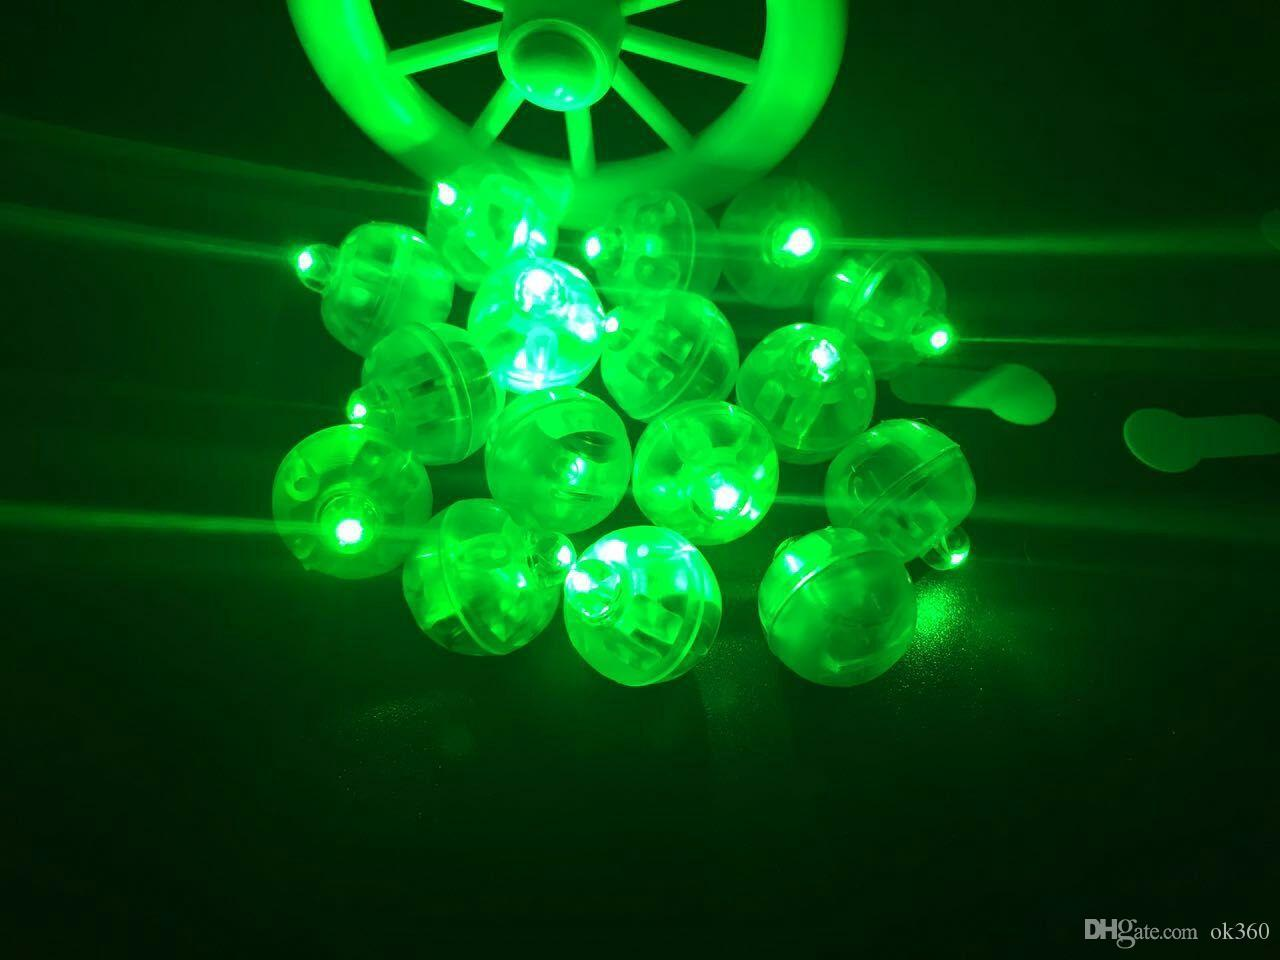 Colorful Round Led RGB Flash Ball Lamps Balloon Lights Submersible Lantern Lights for Lantern Christmas Wedding Party Decoration